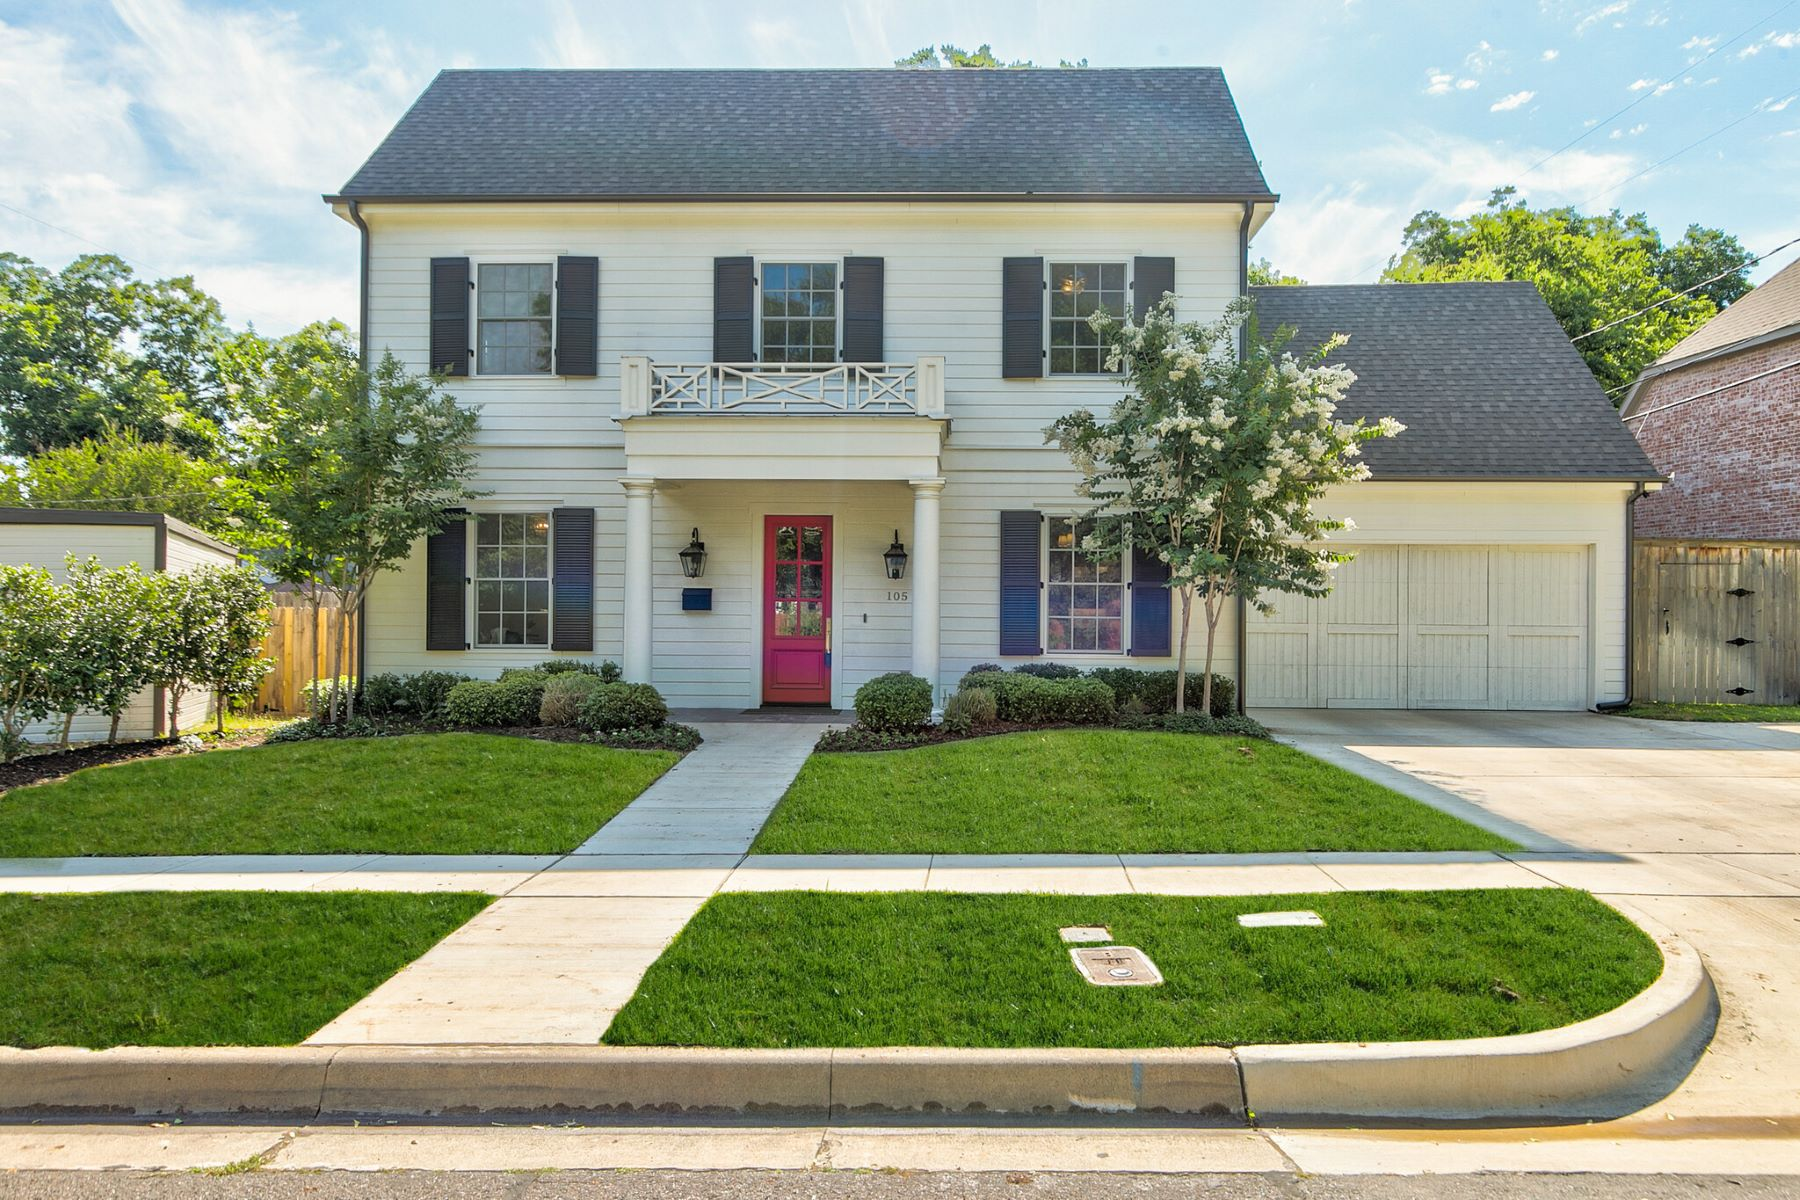 Single Family Homes for Sale at Monticello Colonial 105 Linden Lane Fort Worth, Texas 76107 United States